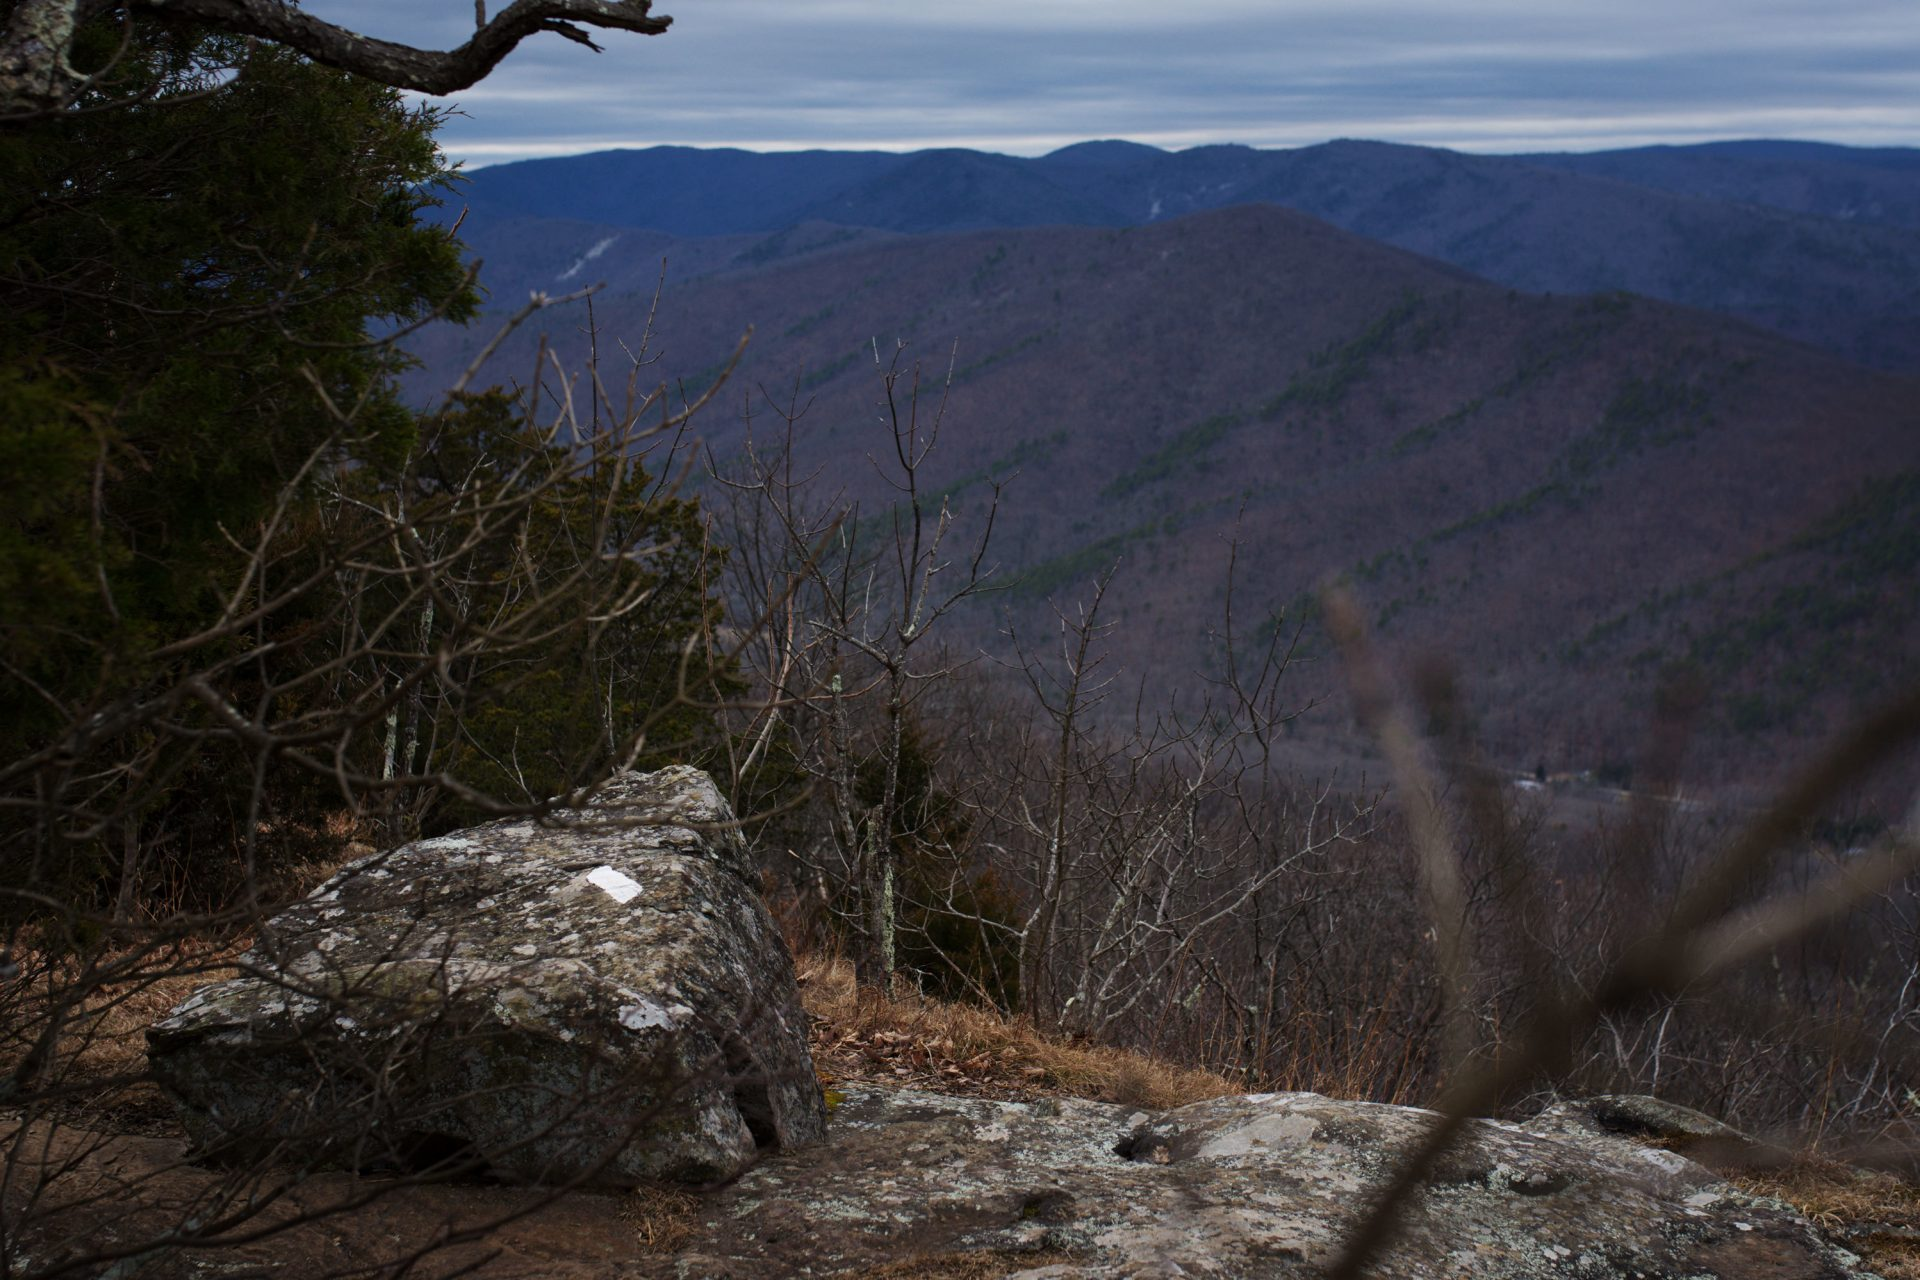 Looking west from this overlook in the George Washington National Forest in central Virginia, the pathway of the pipeline would be visible along the valley floor running to the north.